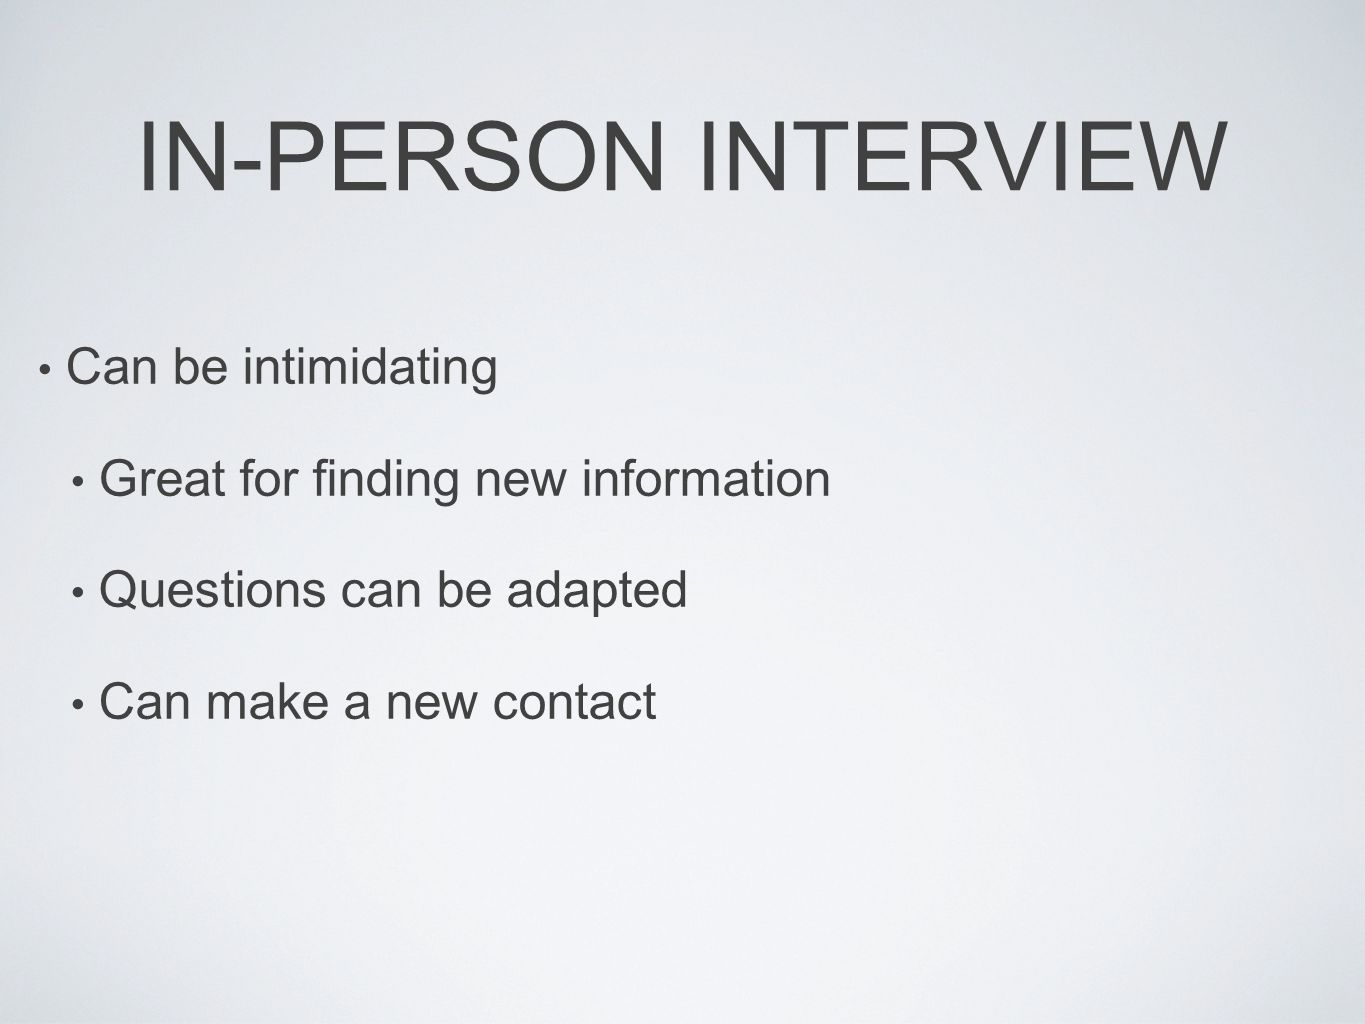 IN-PERSON INTERVIEW Can be intimidating Great for finding new information Questions can be adapted Can make a new contact